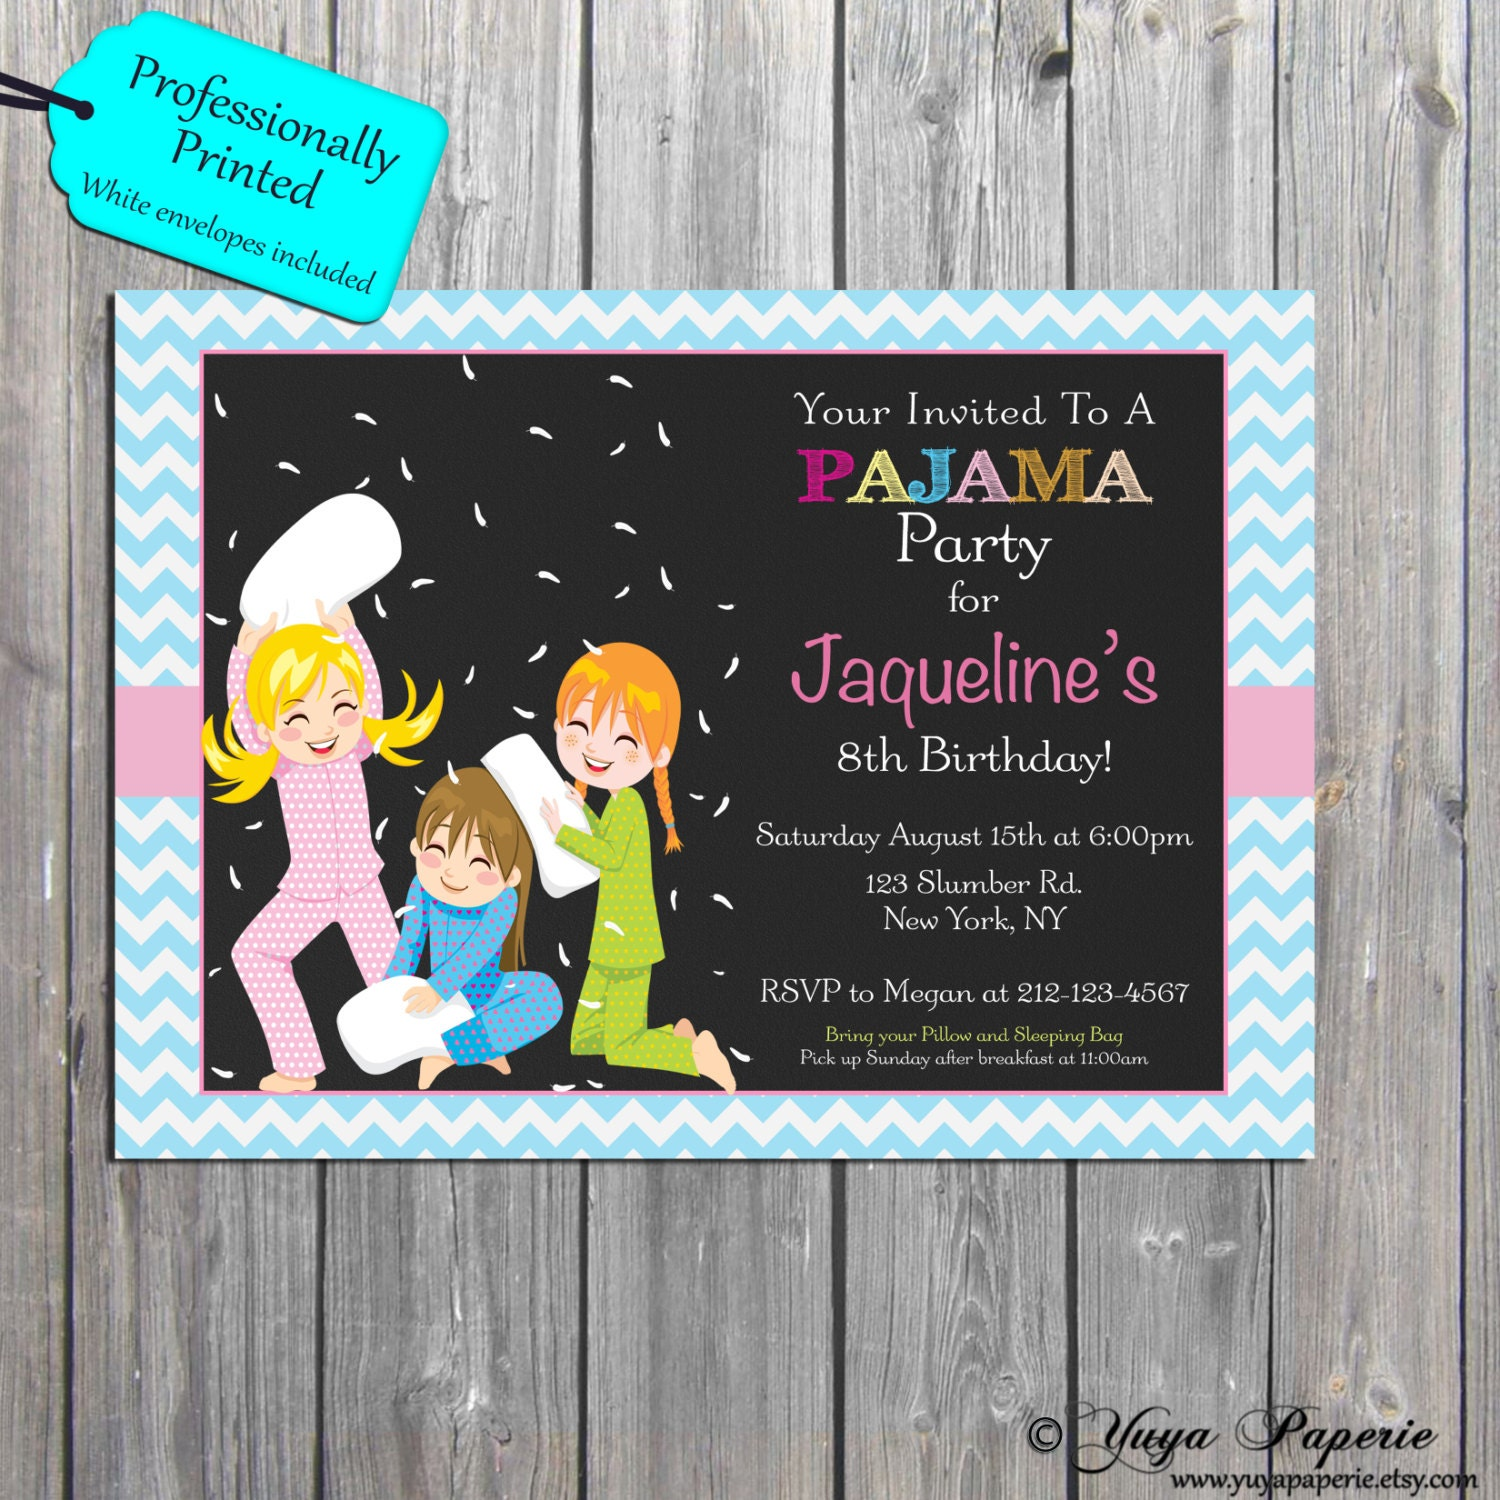 pajama party invitation slumber birthday party invitations sleepover invite professionally printed also available in digital format